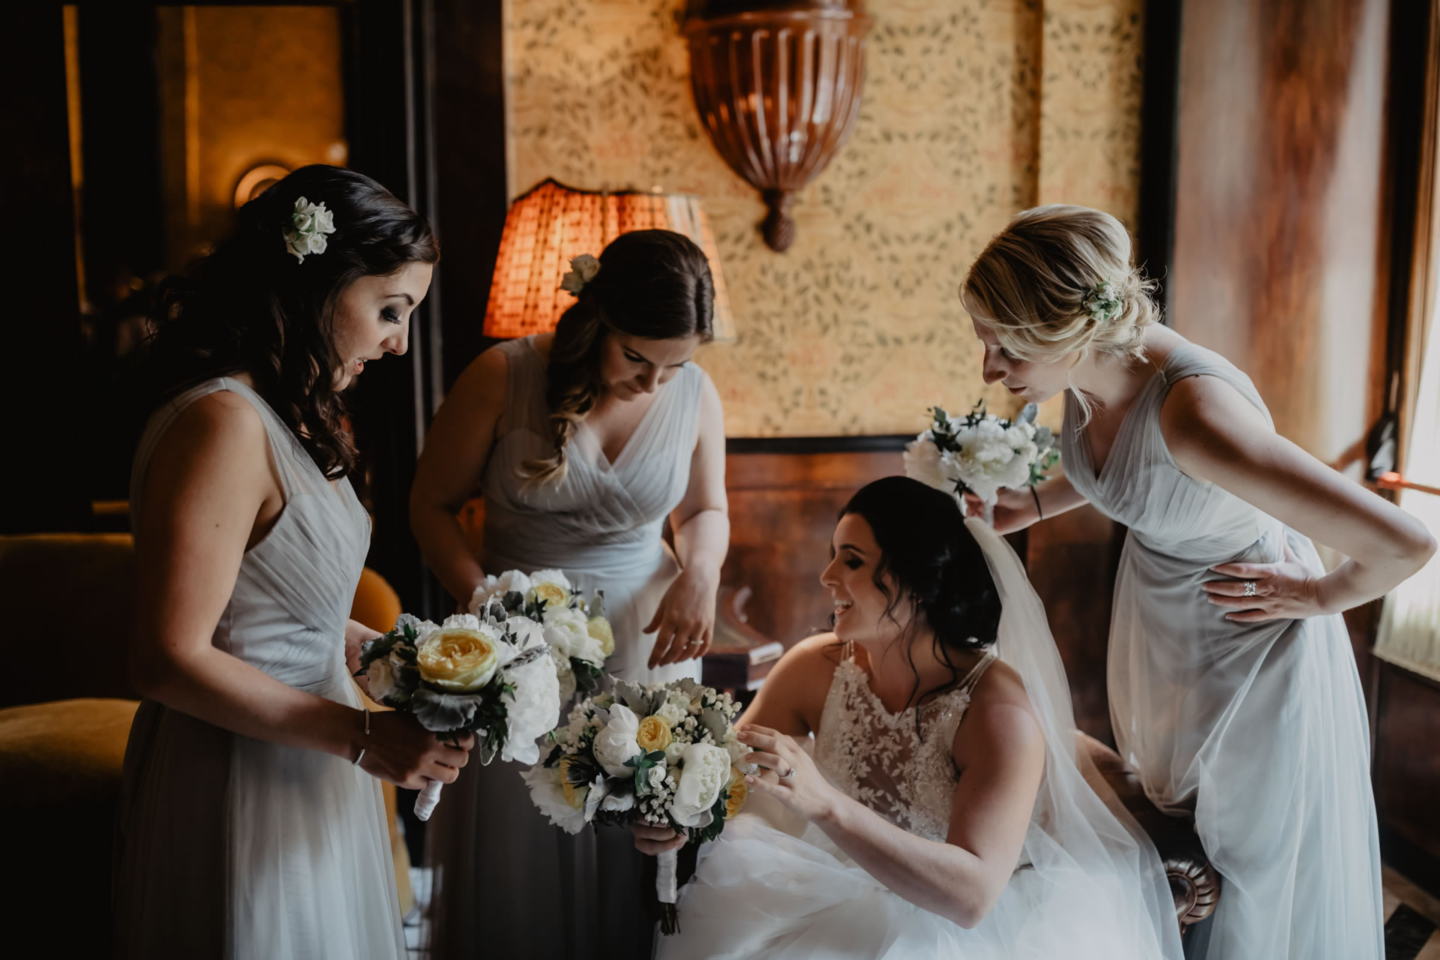 A breath-taking wedding in Rome, the eternal city :: Luxury wedding photography - 13